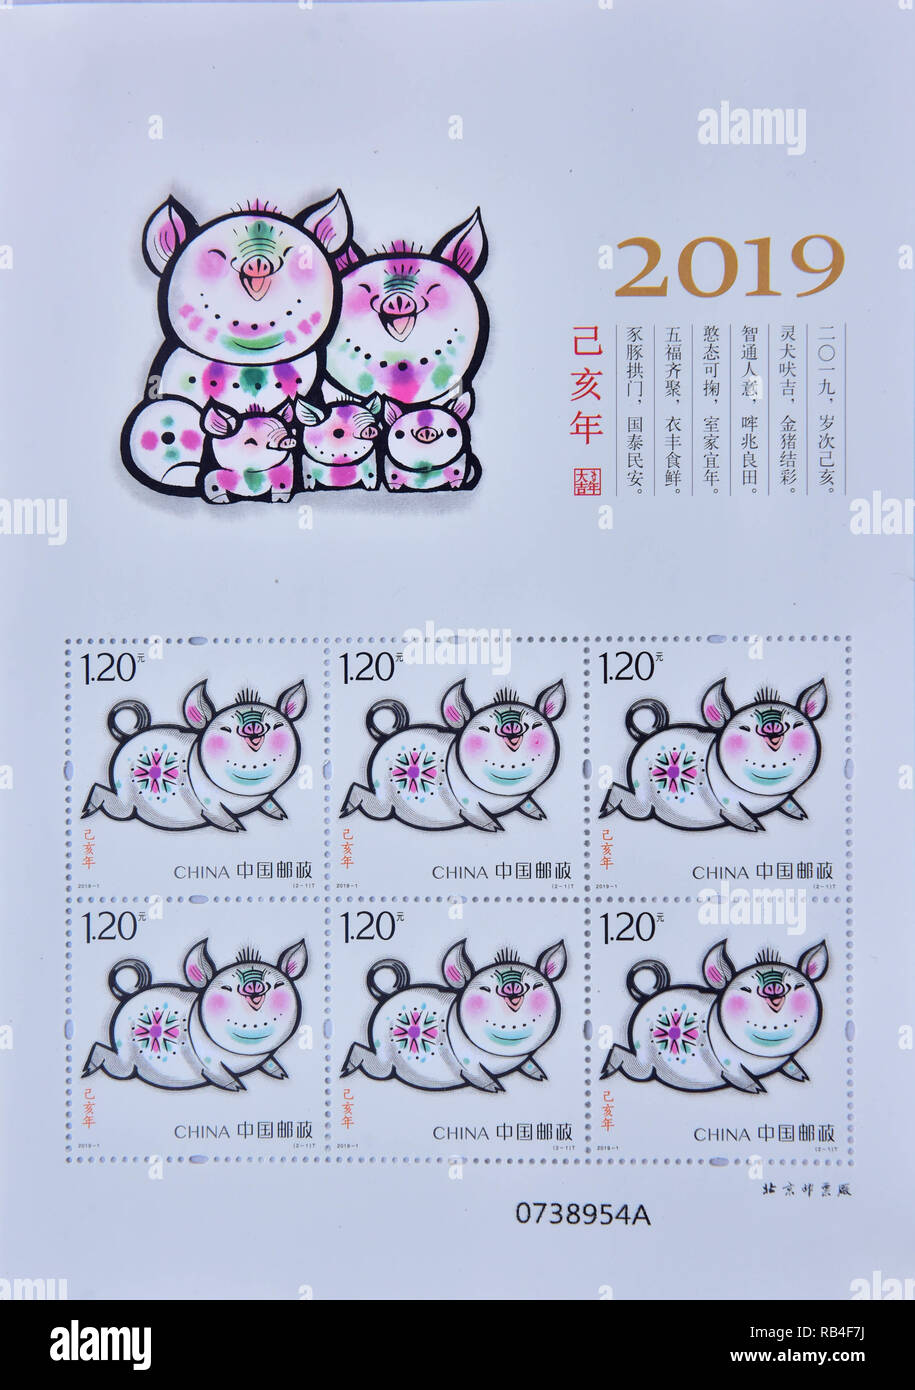 January 5, 2019 - China - China Post issues stamps of the